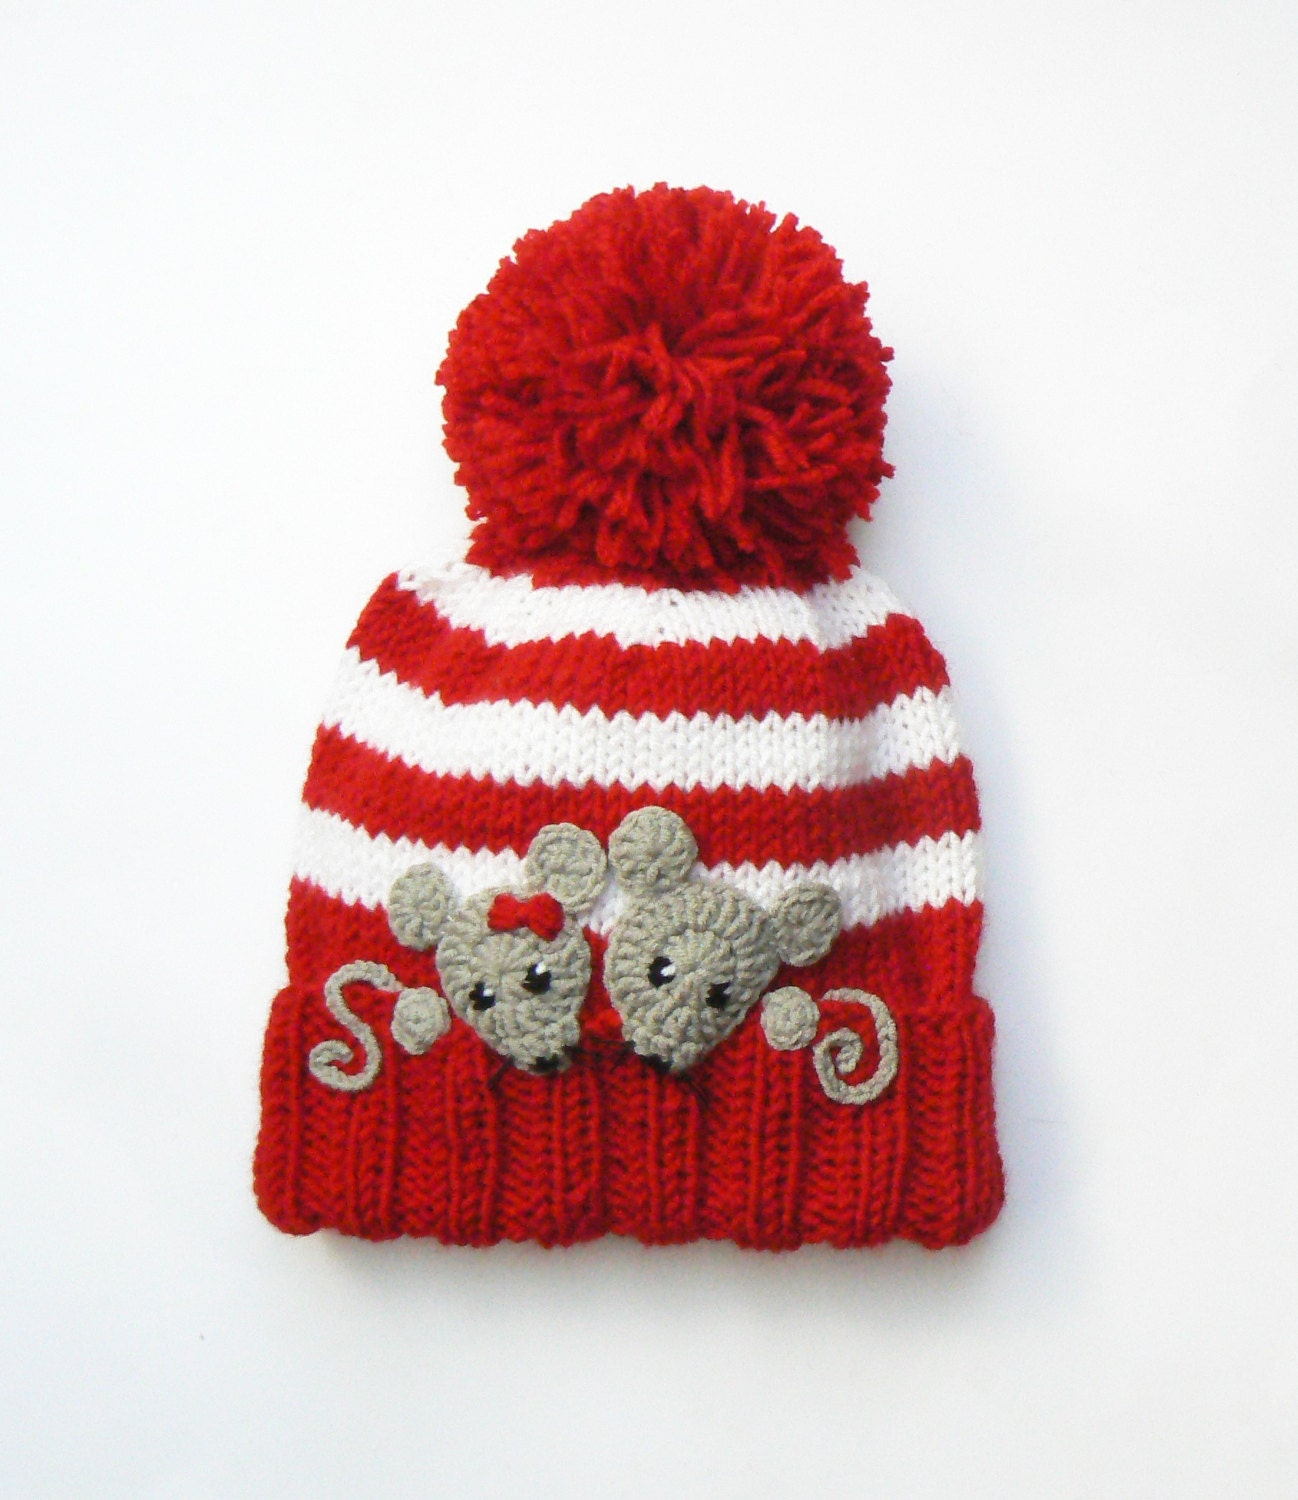 Knitting Kids Hat : Knit hat kids winter beanie pom